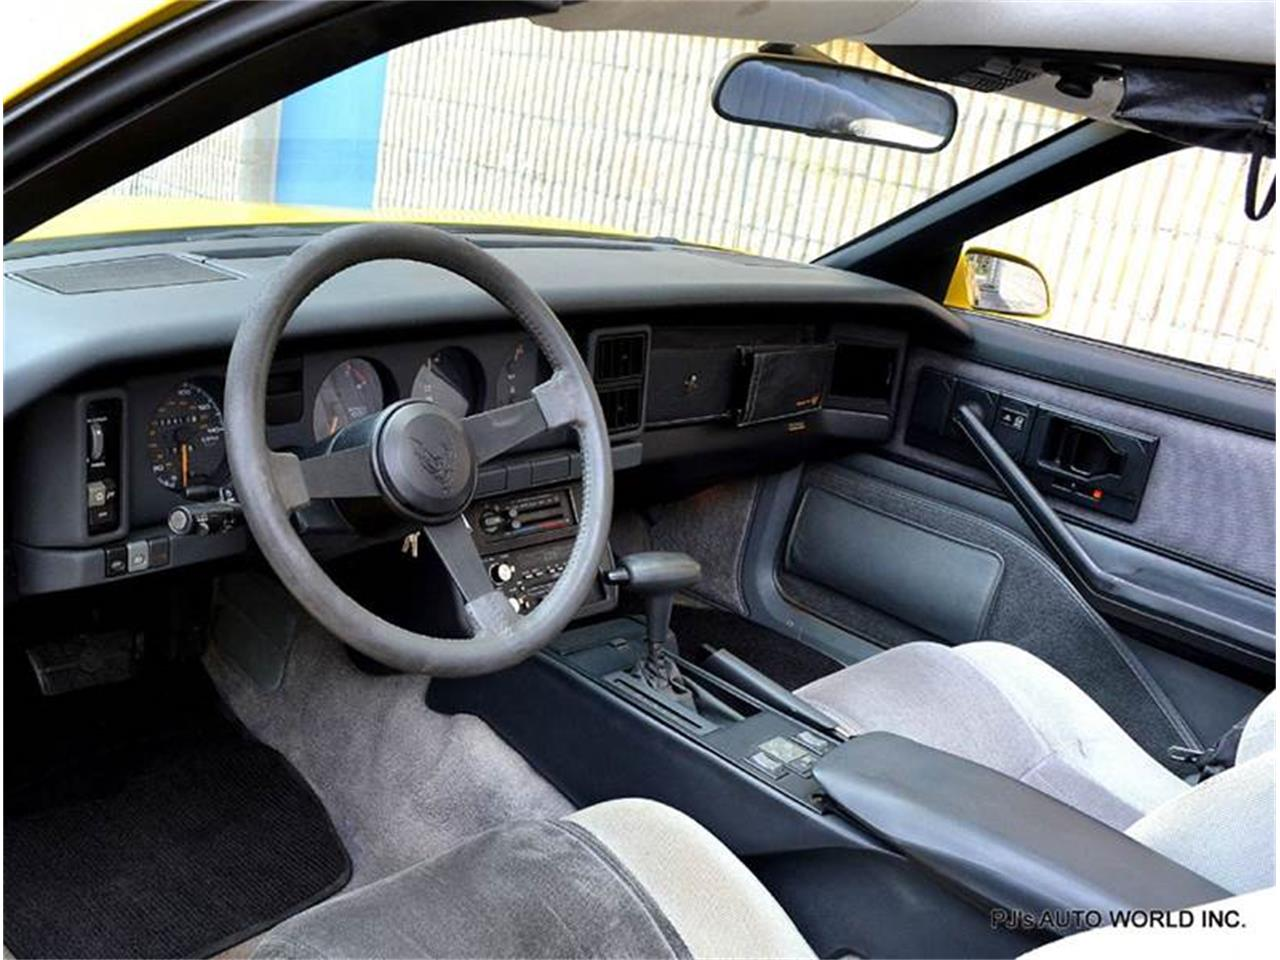 Large Picture of '86 Pontiac Firebird located in Florida - $13,900.00 - FF1Q